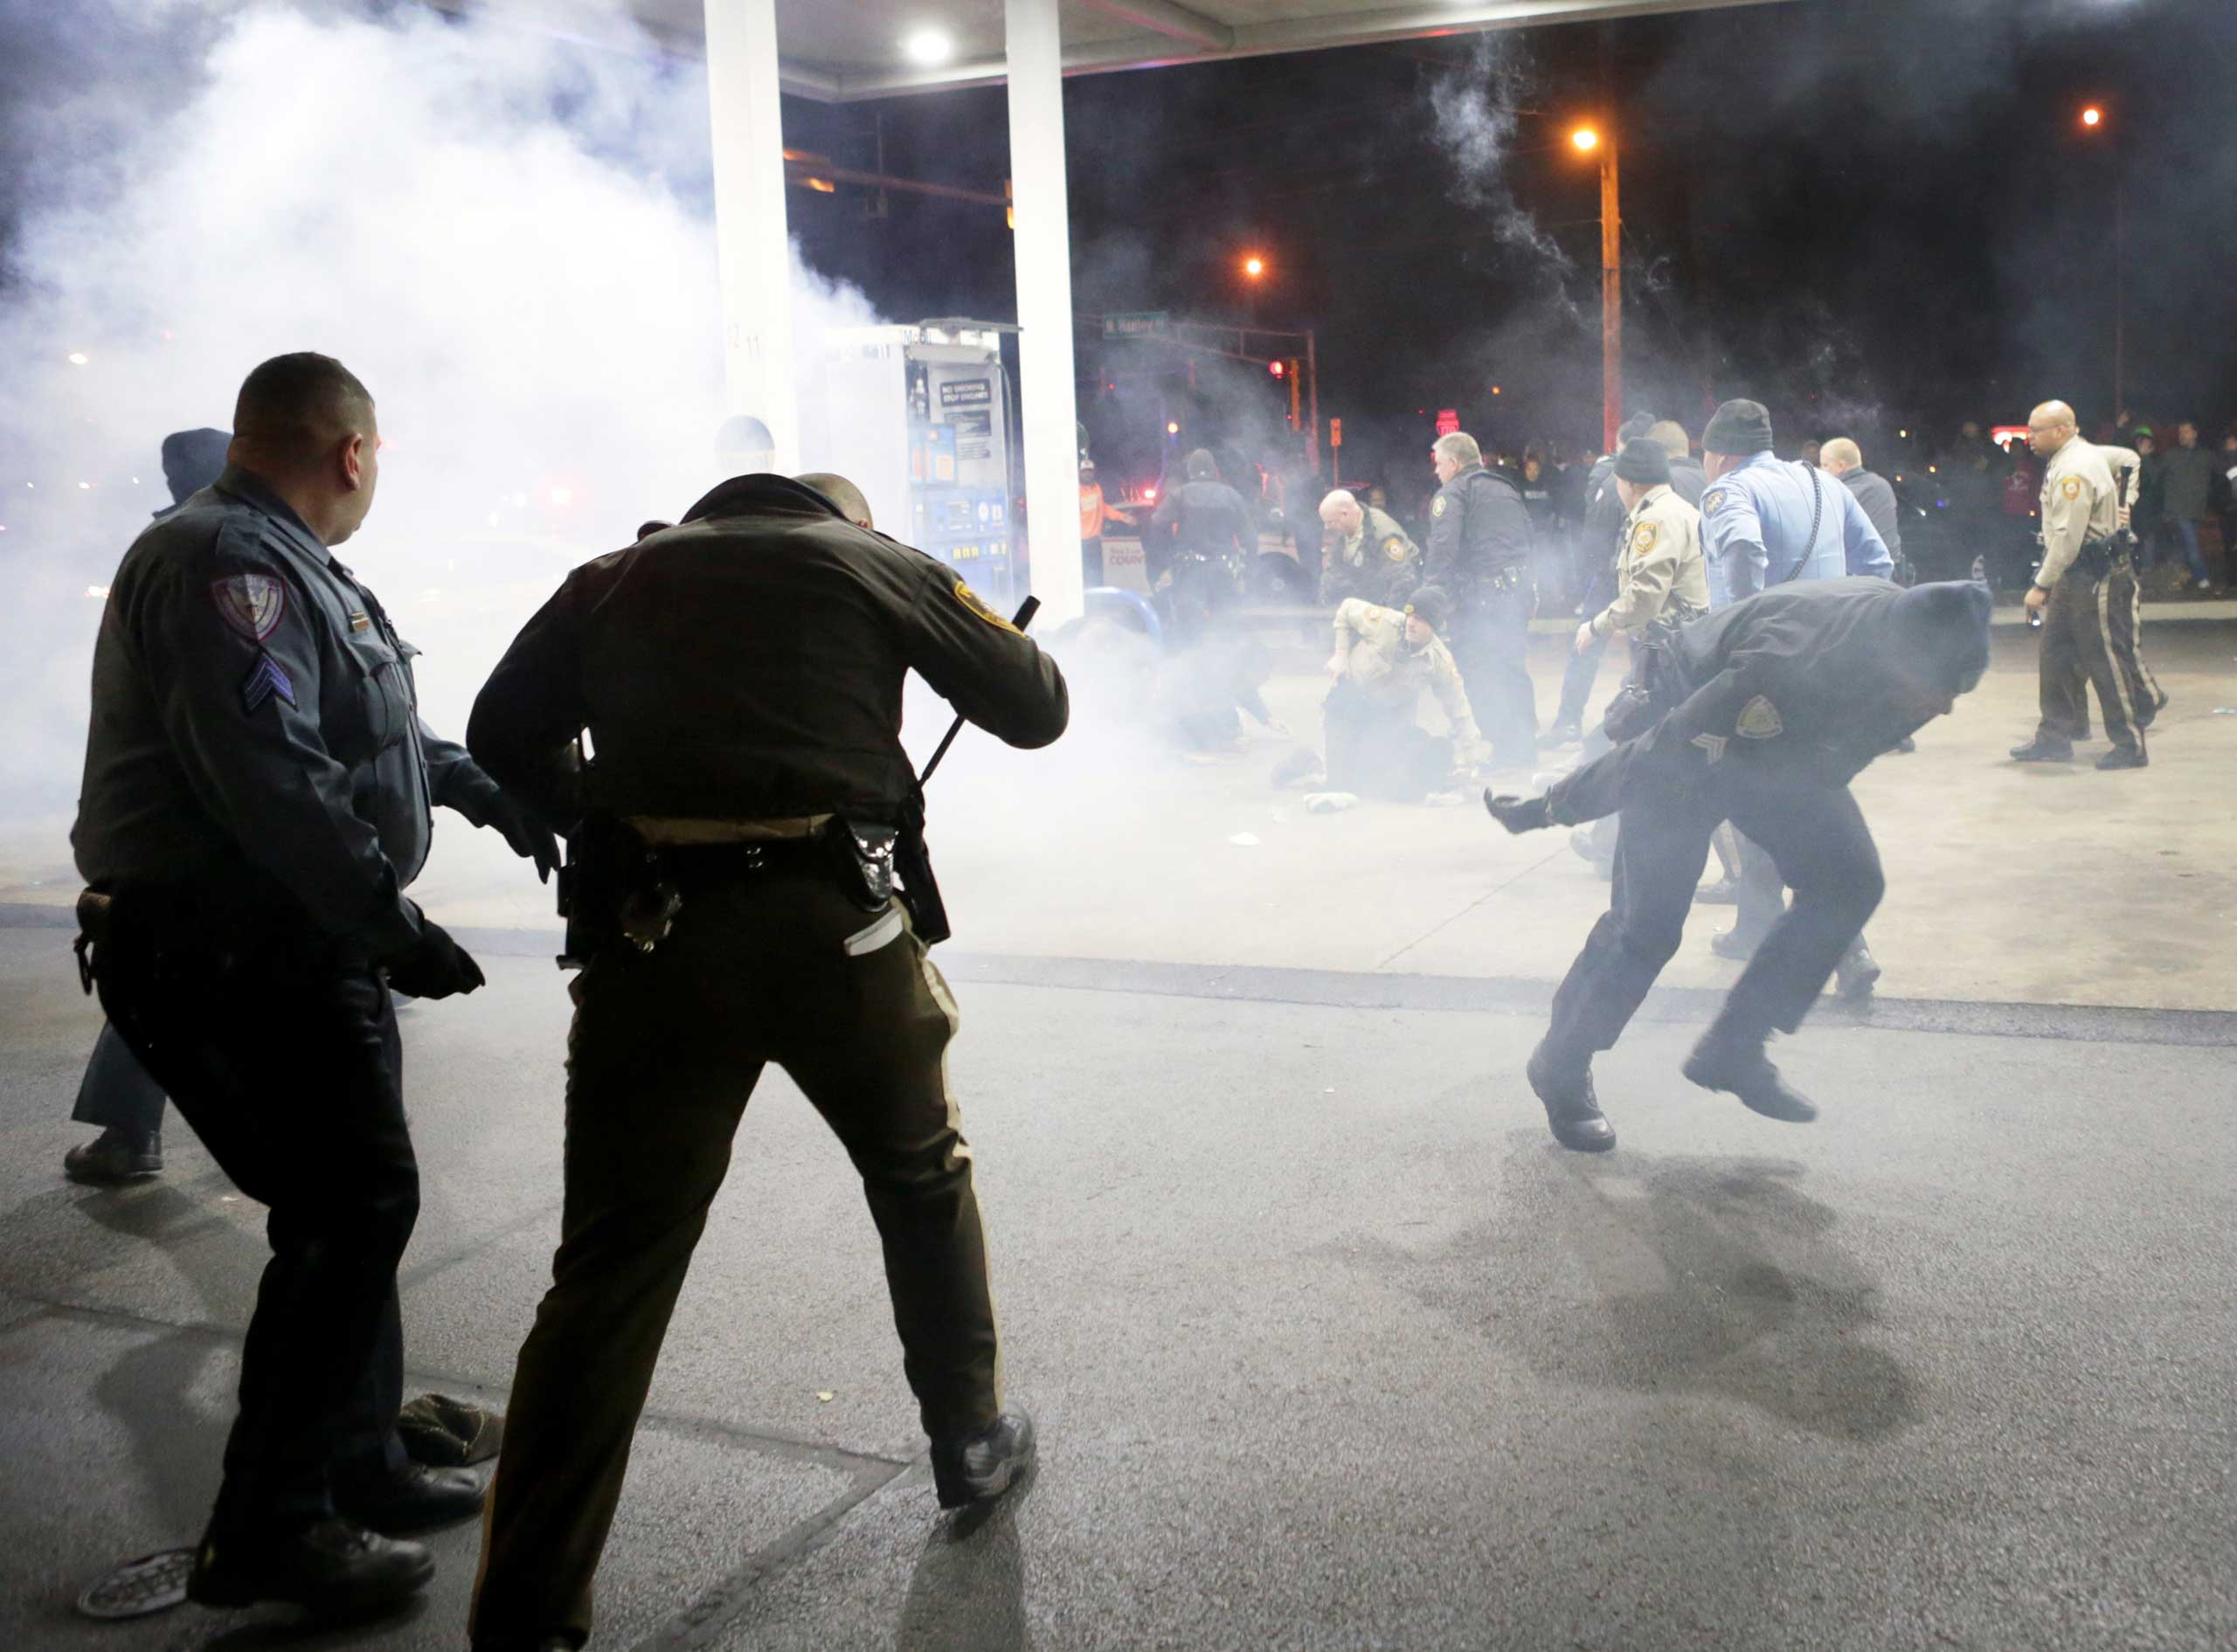 Police try to control a crowd on Dec. 24, 2014, on the lot of a gas station following a shooting in Berkeley, Mo.